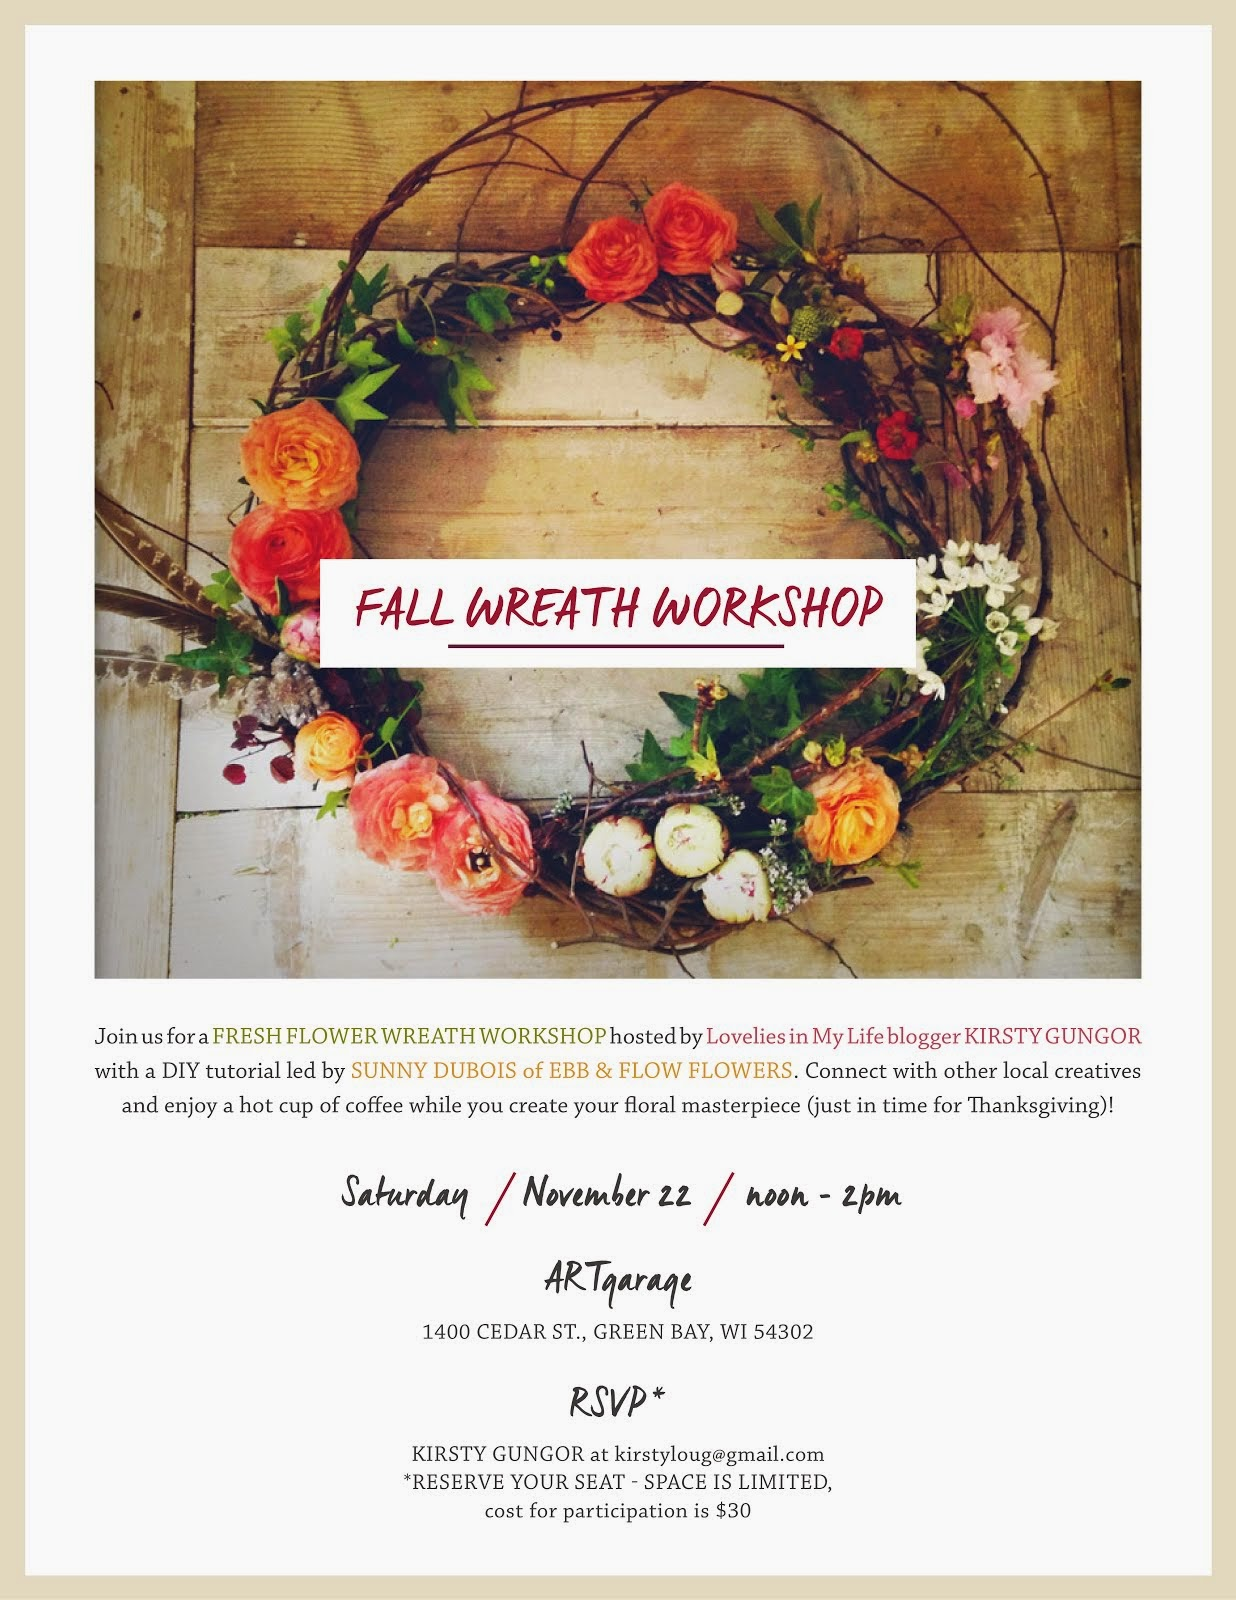 A Fall Wreath Workshop